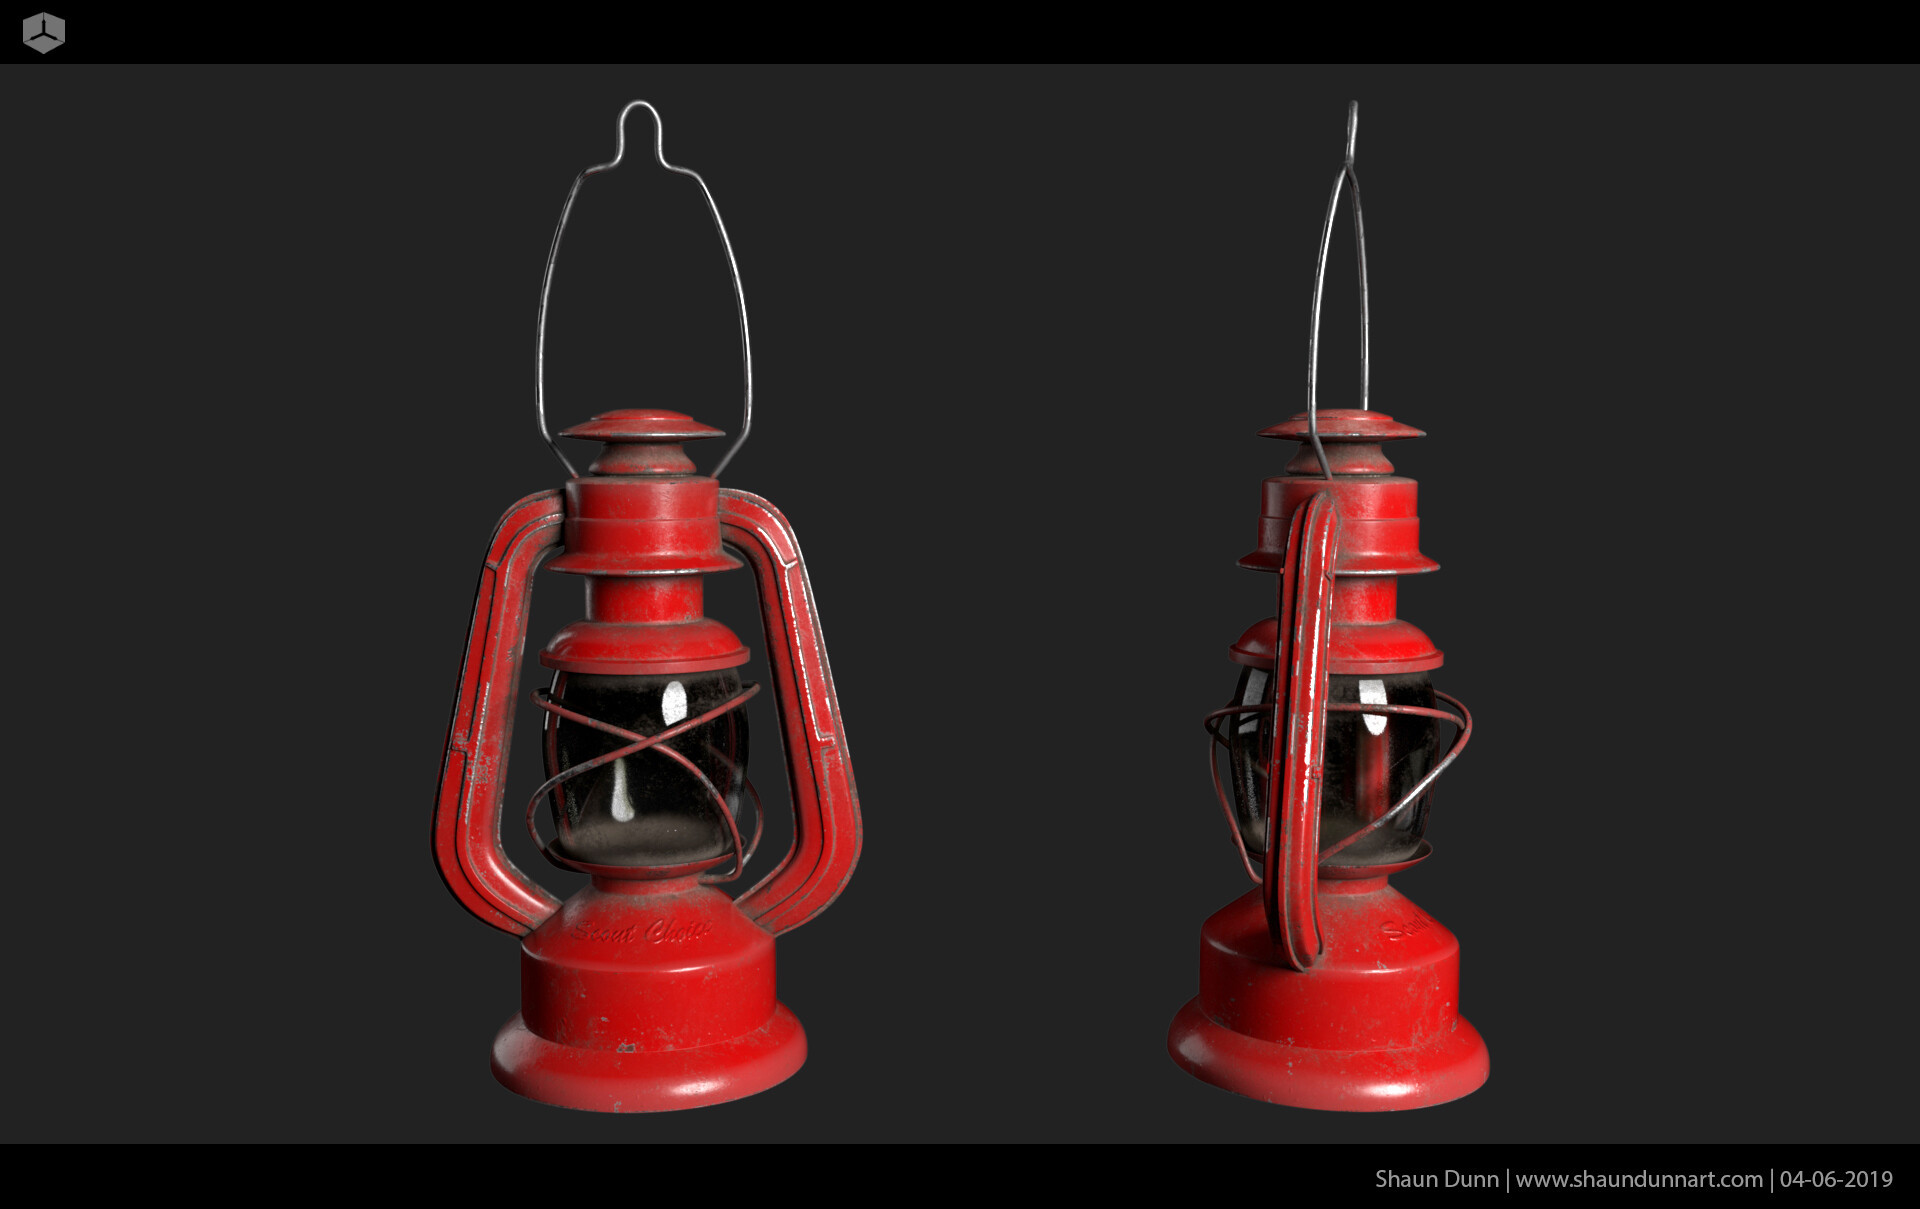 The lantern was a fun model to texture.